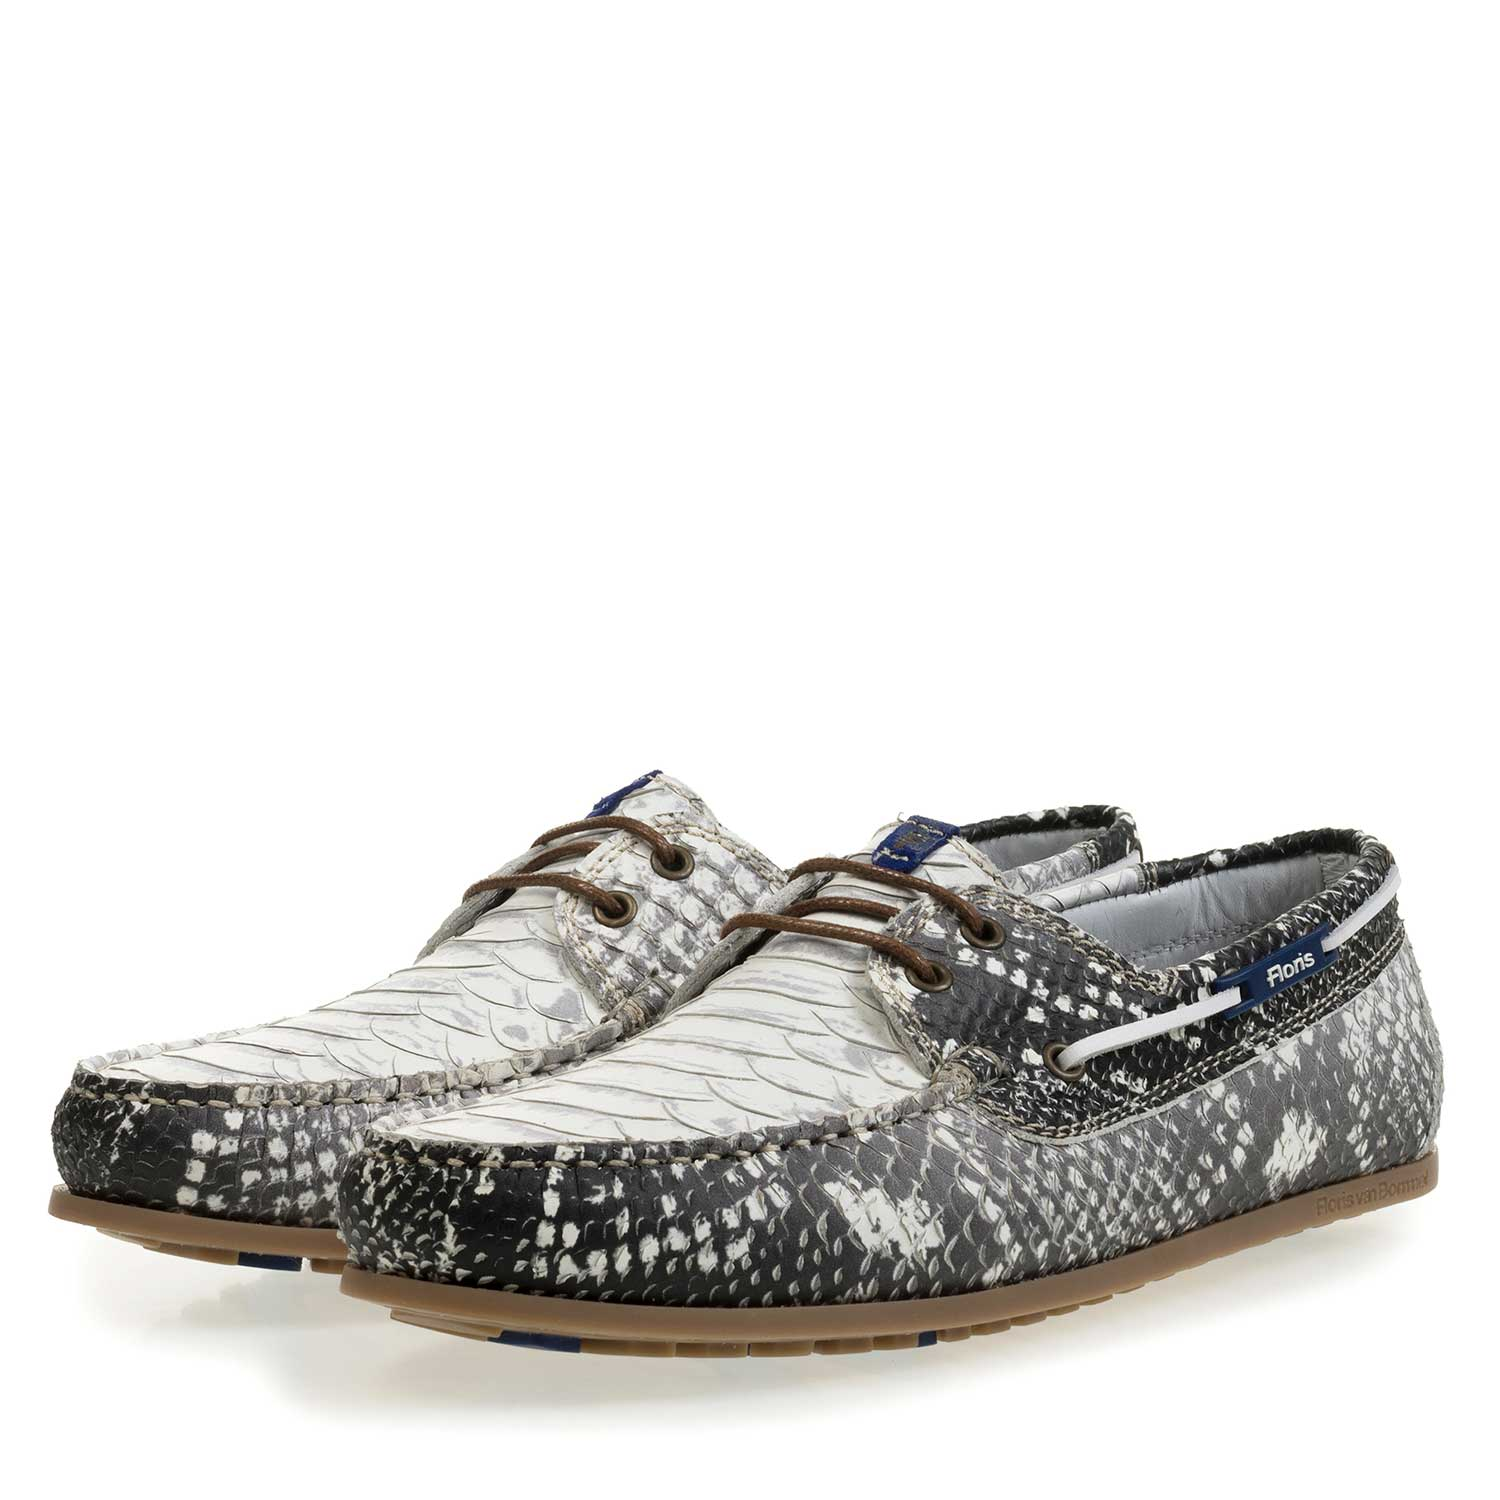 15035/05 - Grey leather boat shoe with snake print